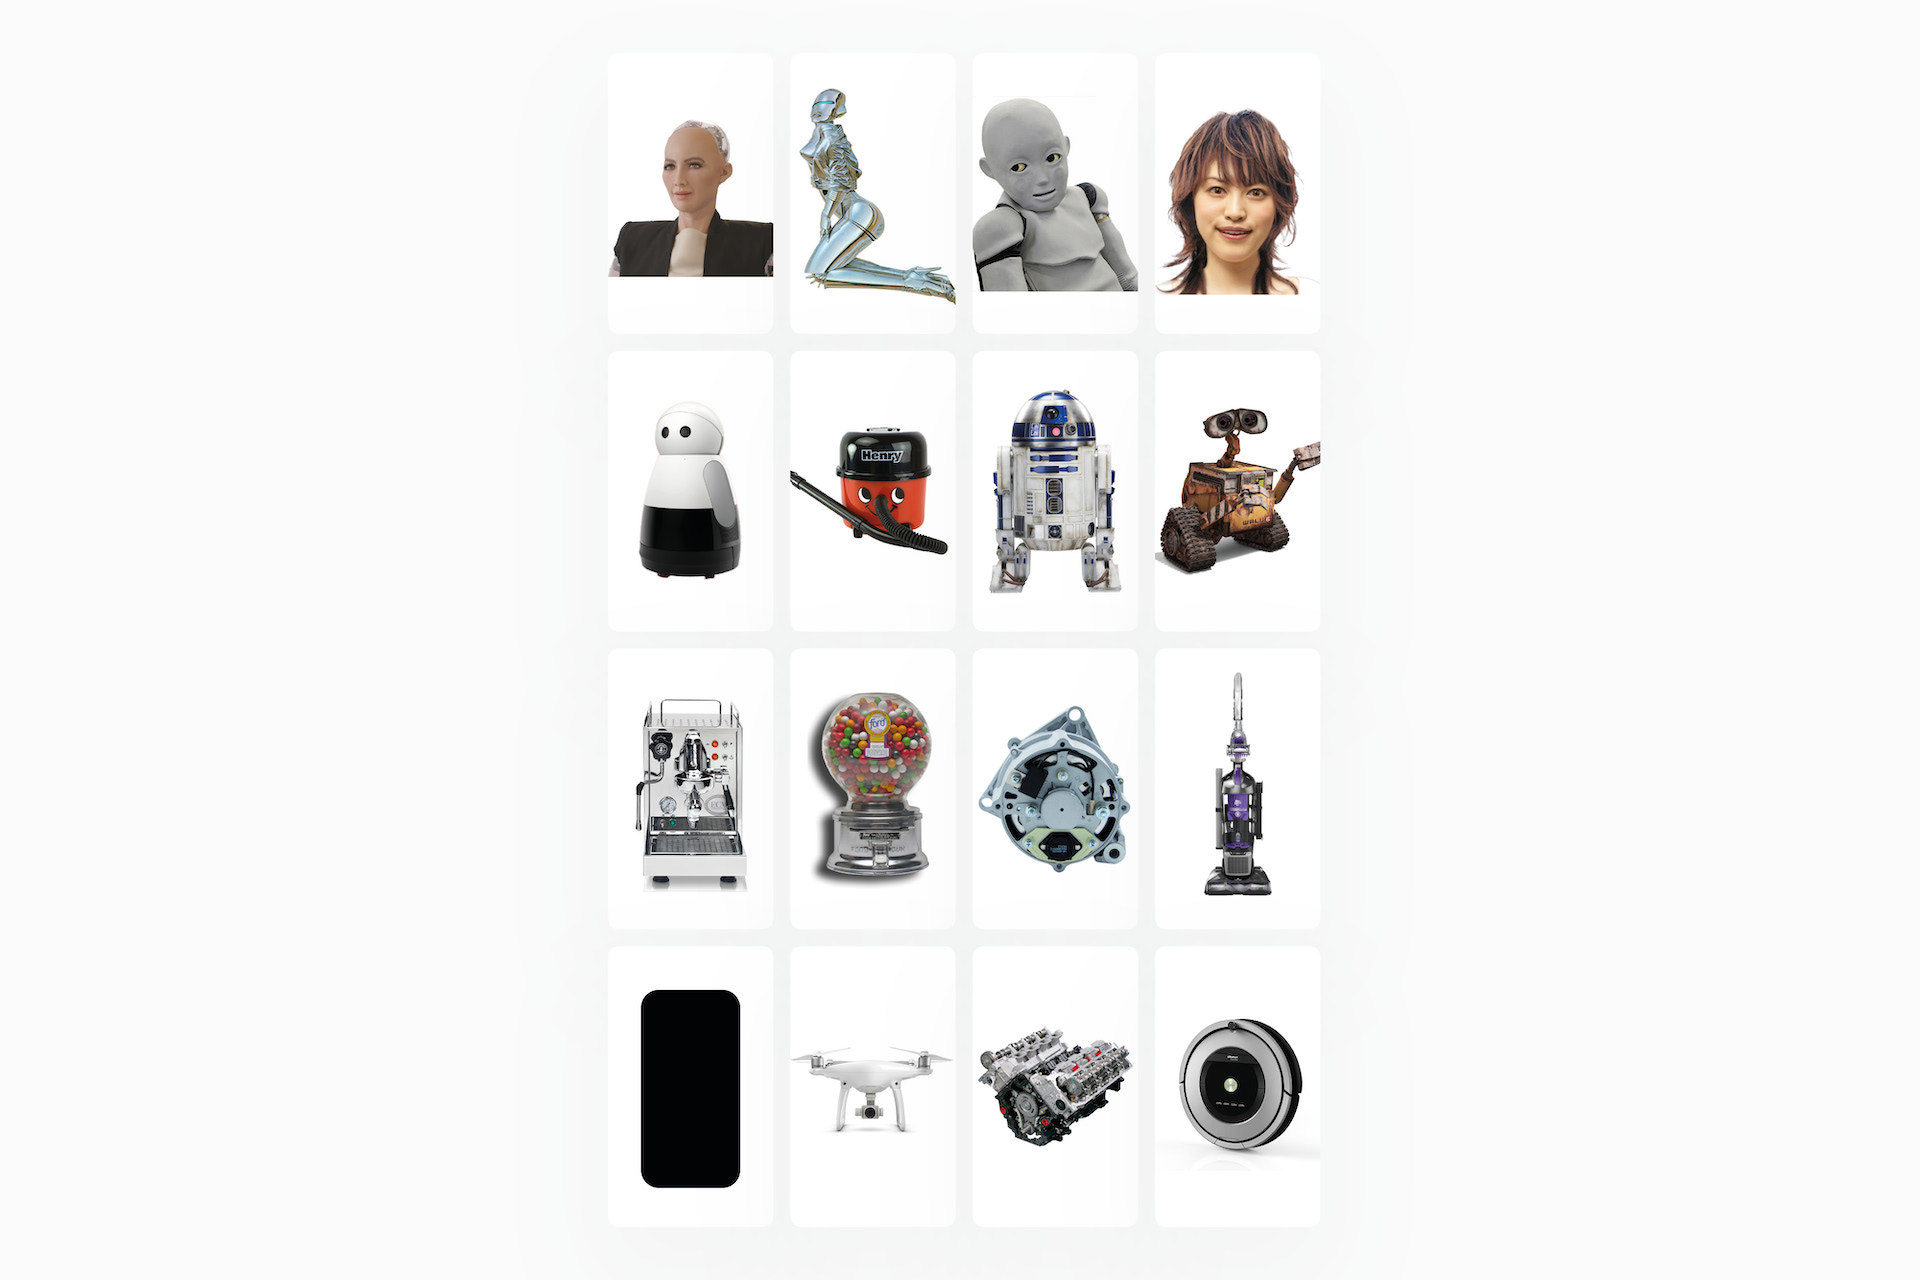 Some of the images shown during the user-testing, which revealed people prefer objects with human-like behaviour